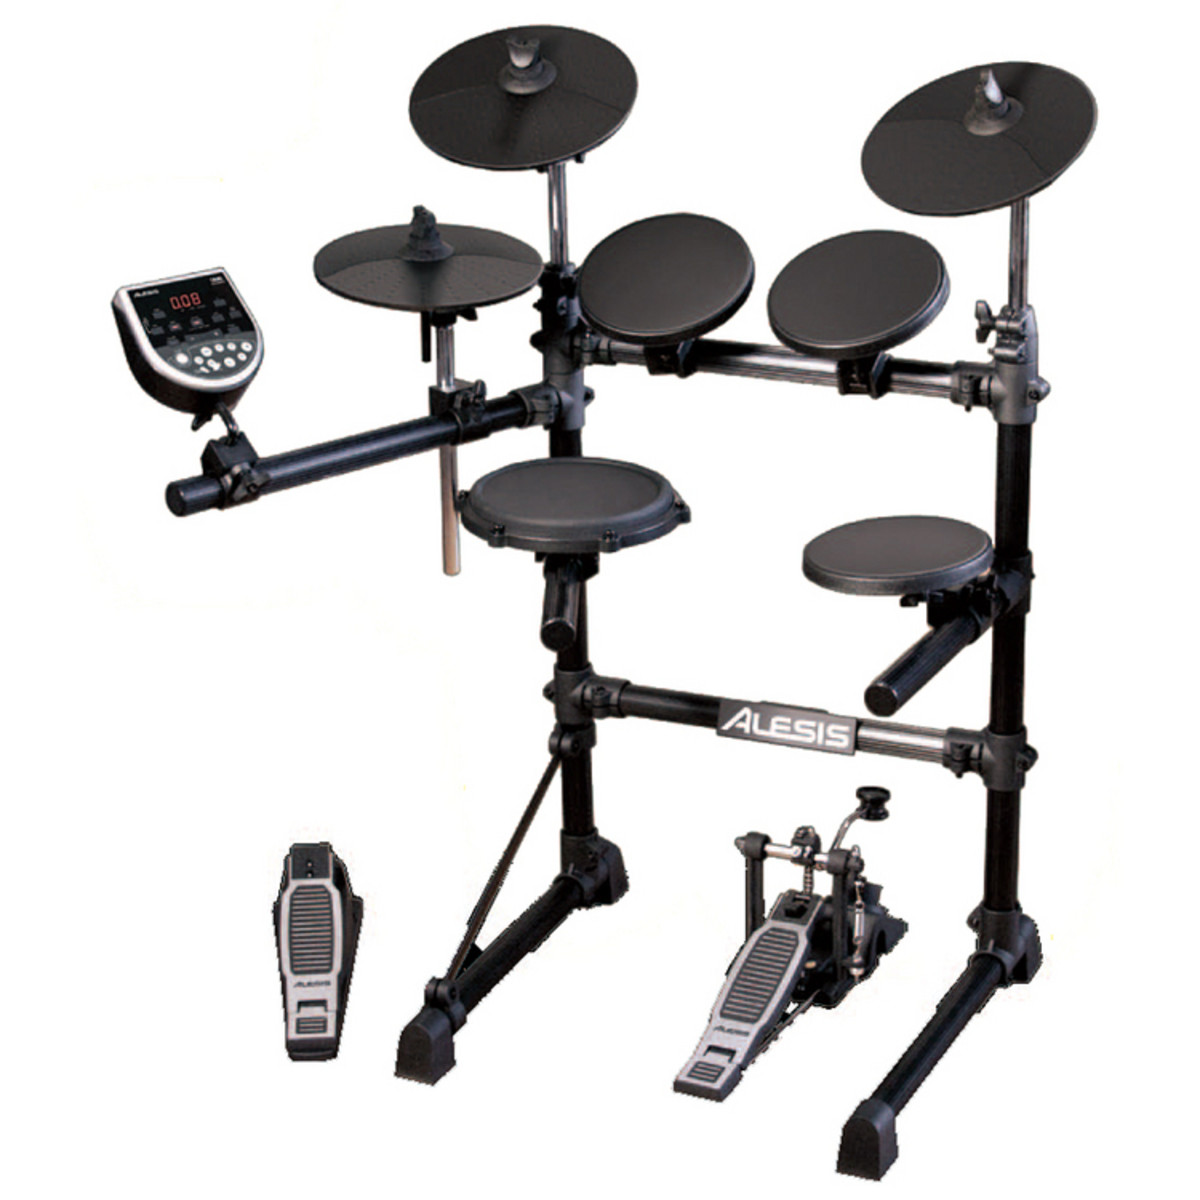 Alesis DM6 Session Kit 5-Piece Electronic Drum Kit at Gear4music